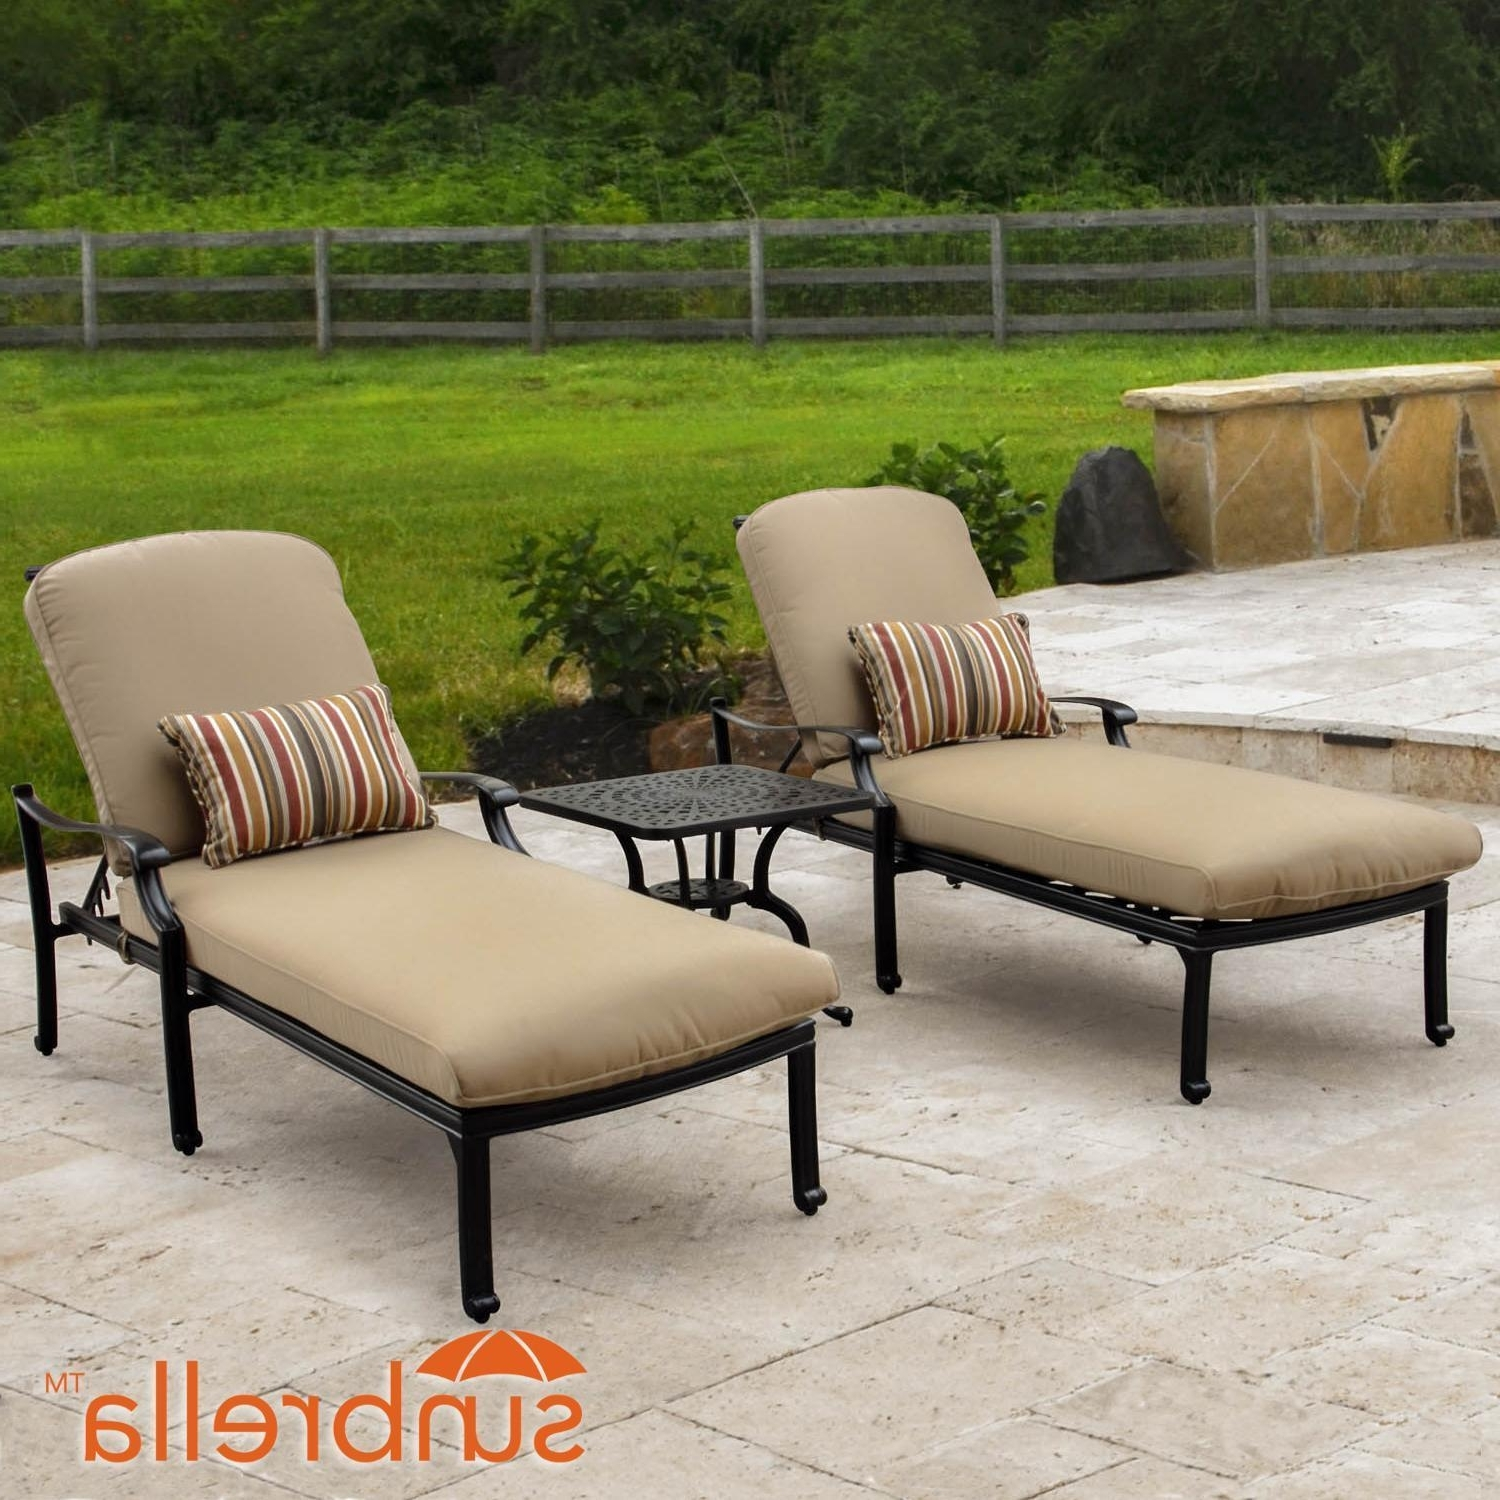 Most Recently Released Patio Chaise Lounges Throughout Bocage 3 Piece Cast Aluminum Patio Chaise Lounge Set W/ Sunbrella (View 6 of 15)